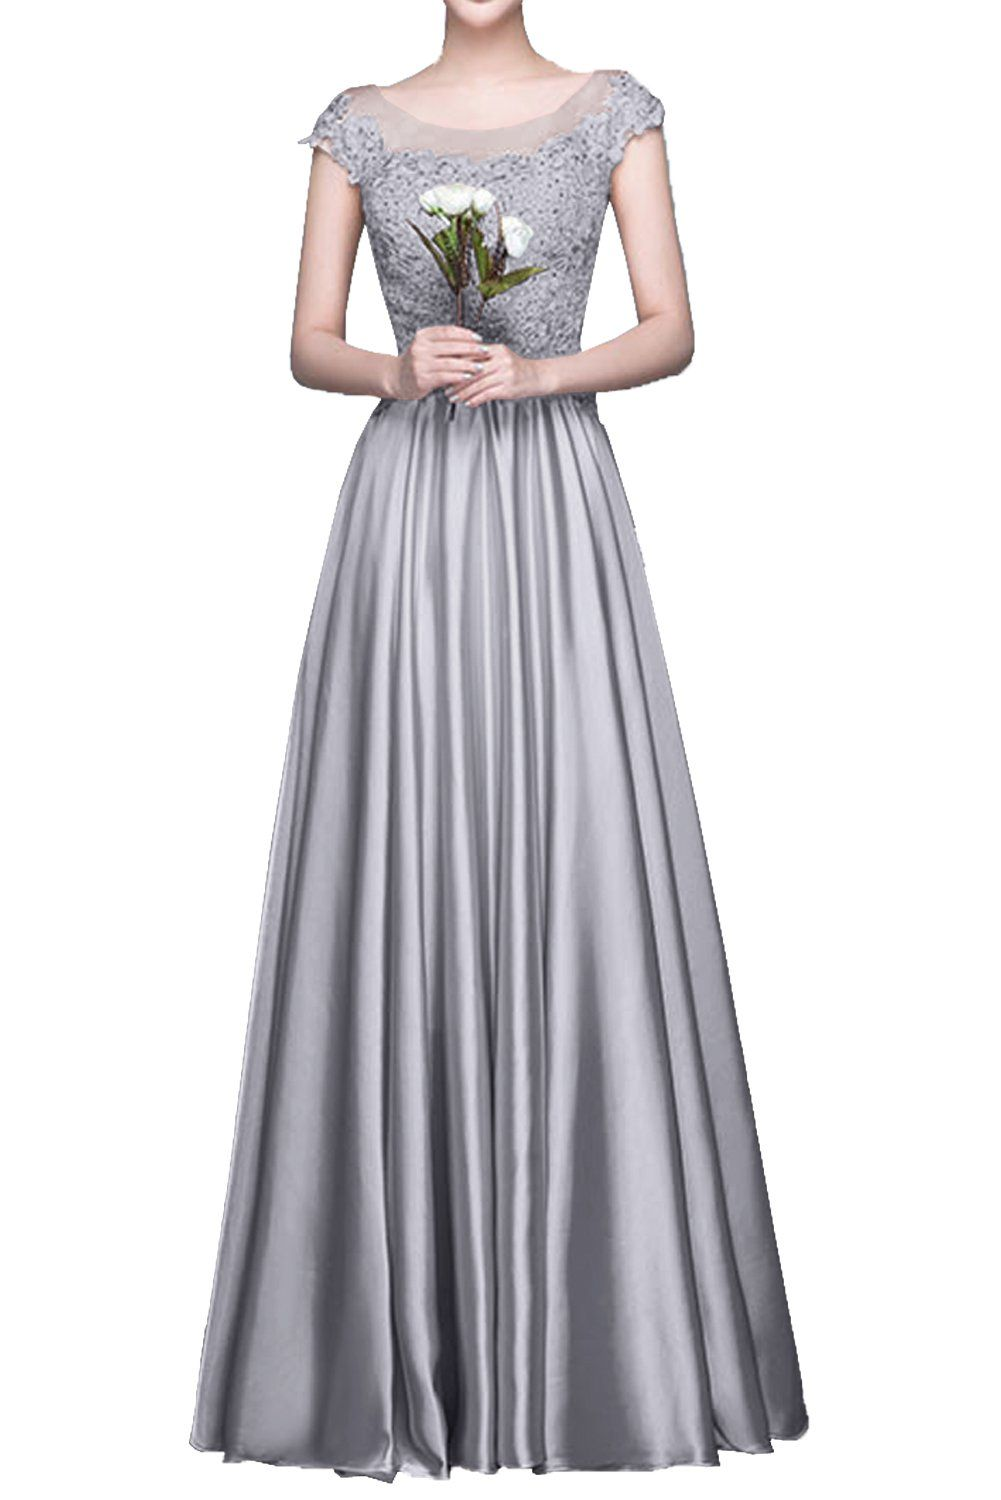 MILANO BRIDE Chic Prom Party Dress Bridesmaid Gown Long A-line Applique Modest-12-Grey